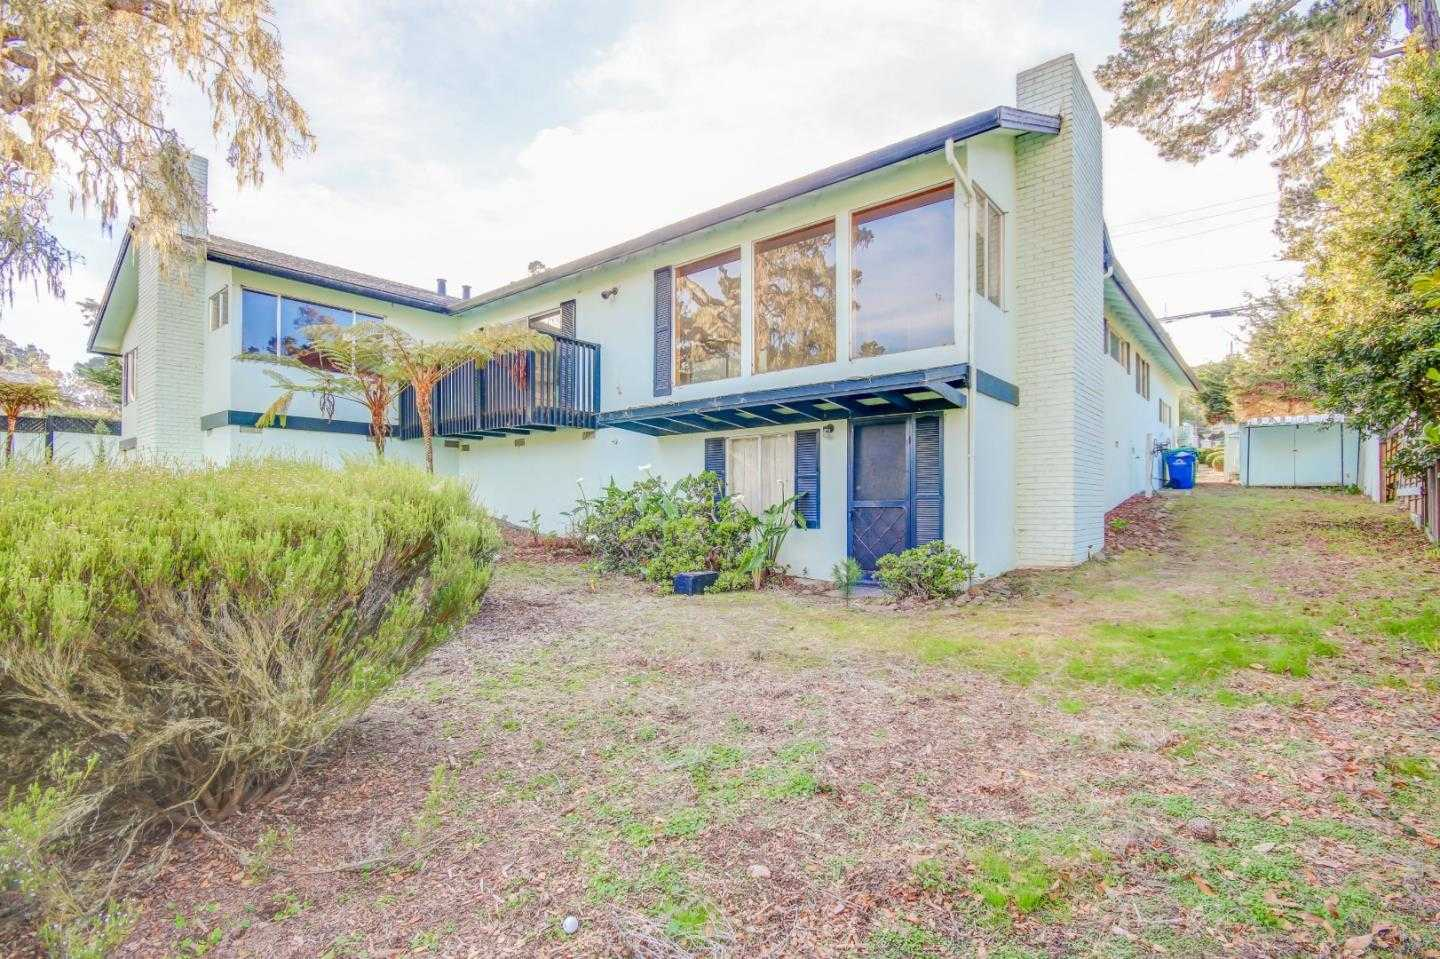 $1,099,900 - 3Br/2Ba -  for Sale in Pebble Beach